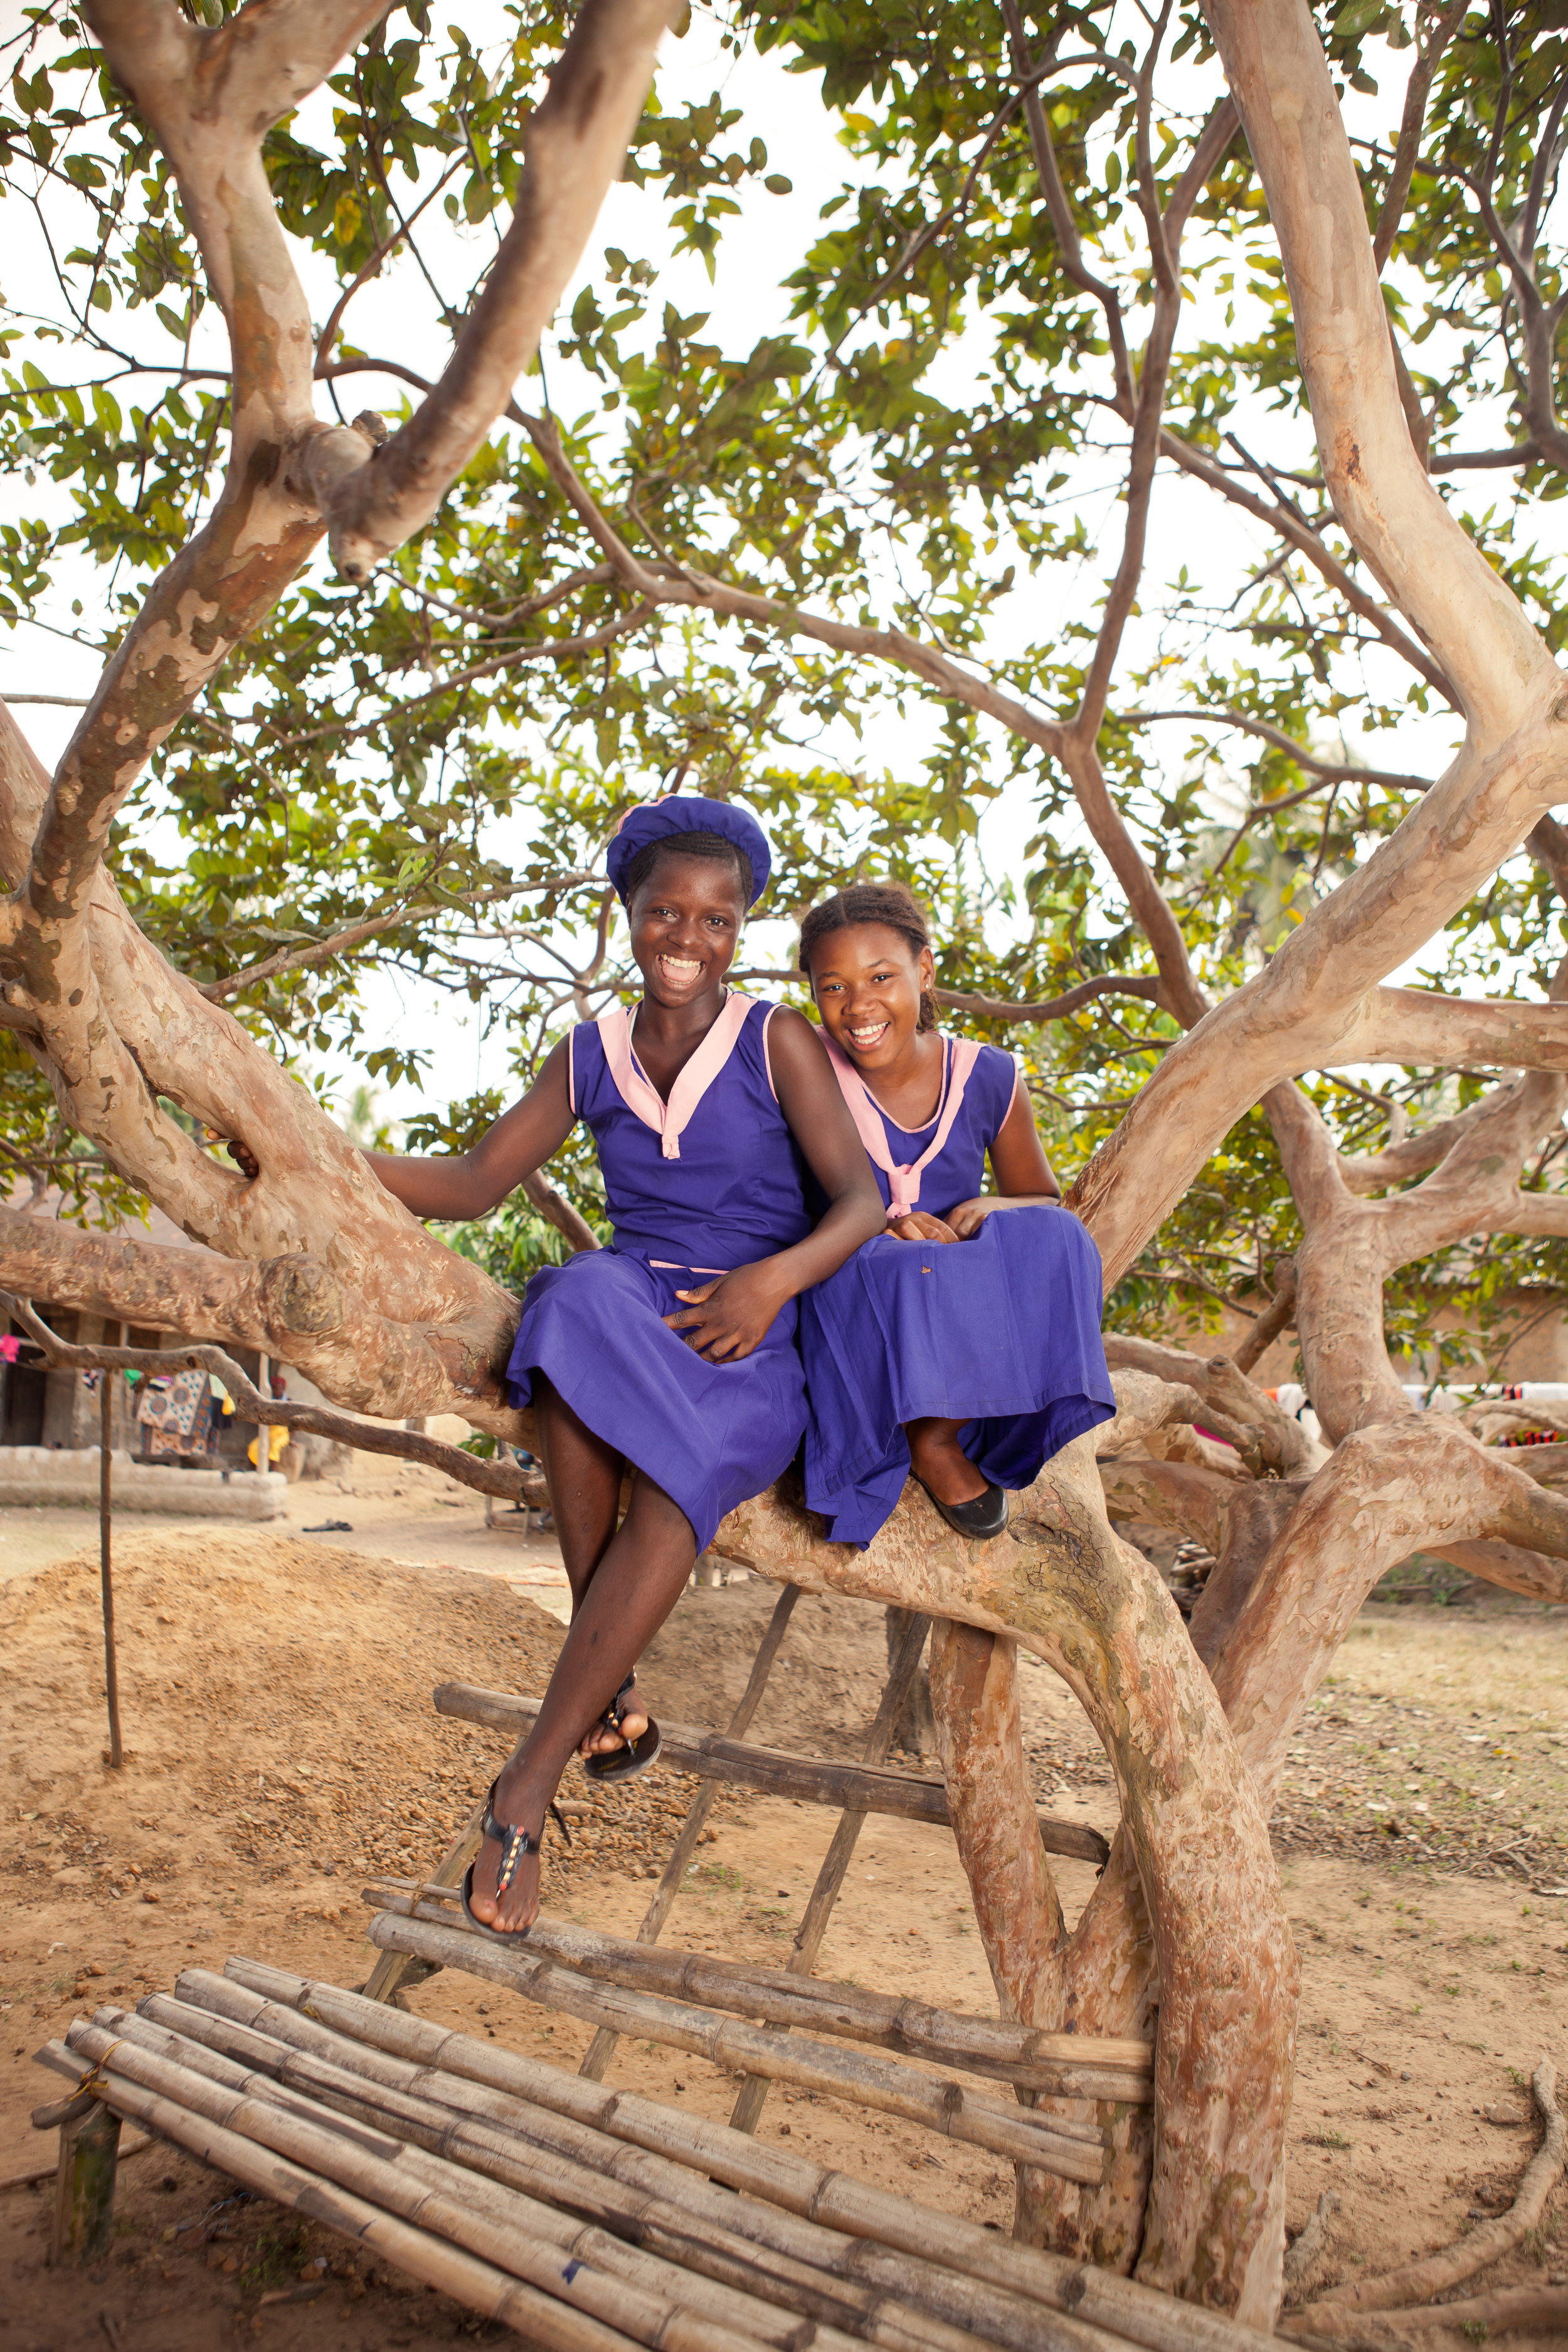 She's the First Scholars Mariatu, 13, and Ramatulai, 12, in Sierra Leone, Nov. 26, 2015. Mariatu lost both of her parents and Ramatulai lost her father to the Ebola virus. Both girls are happy to be back in school after a year of closures.